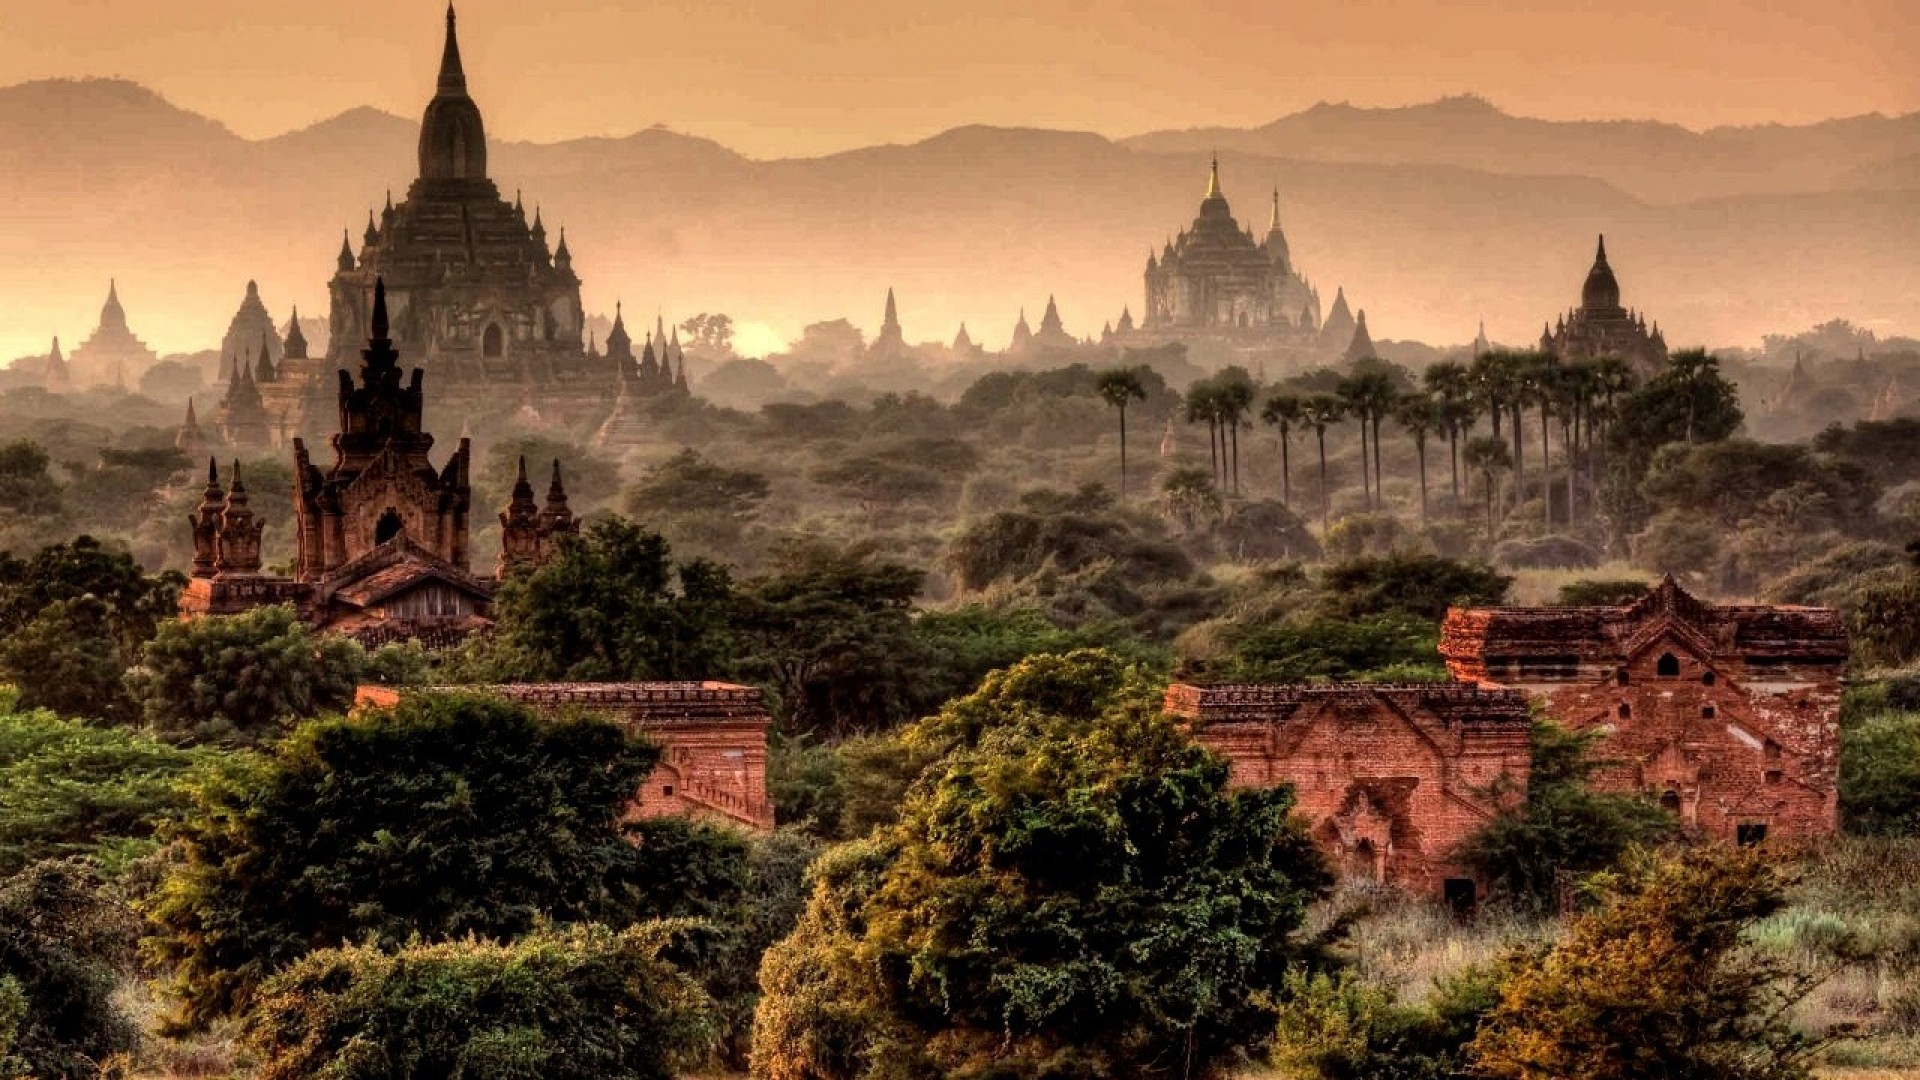 Myanmar Visa Fees Increase